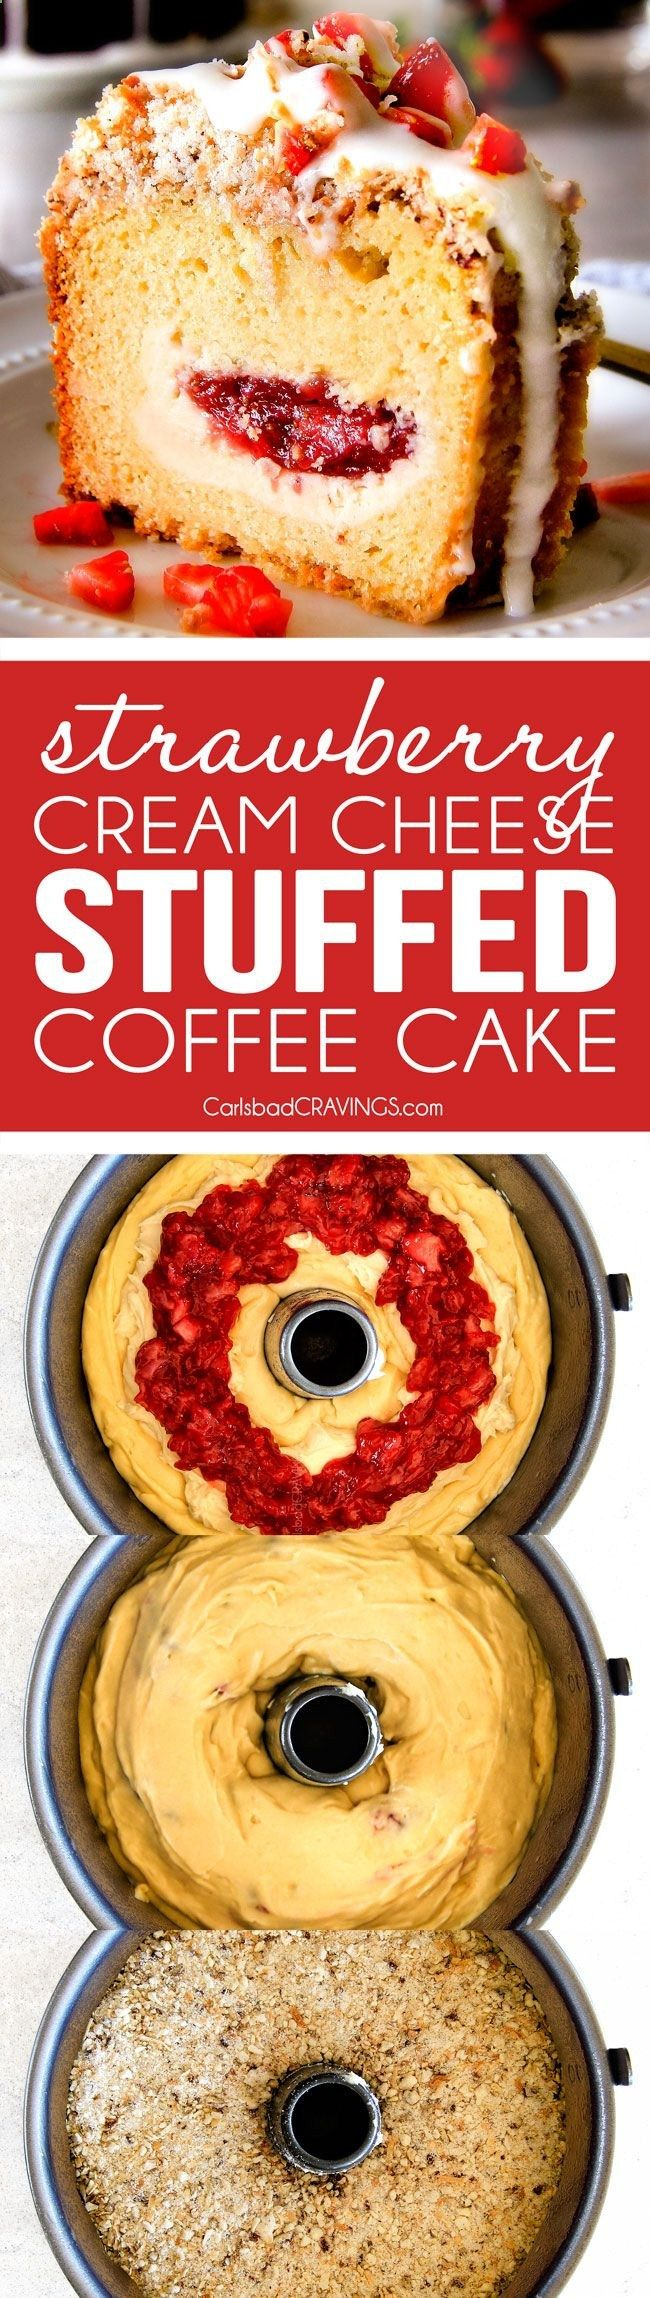 Strawberry Cream Cheese STUFFED Sour Cream Coffee Cake - this is the best strawberry coffee cake ever! the INCREDIBLY creamy cheesecake-like filling and strawberries all topped with Coconut Pecan Streusel and Lemon Drizzle is OUT OF THIS WORLD! I cant say enough good things about this coffee cake!